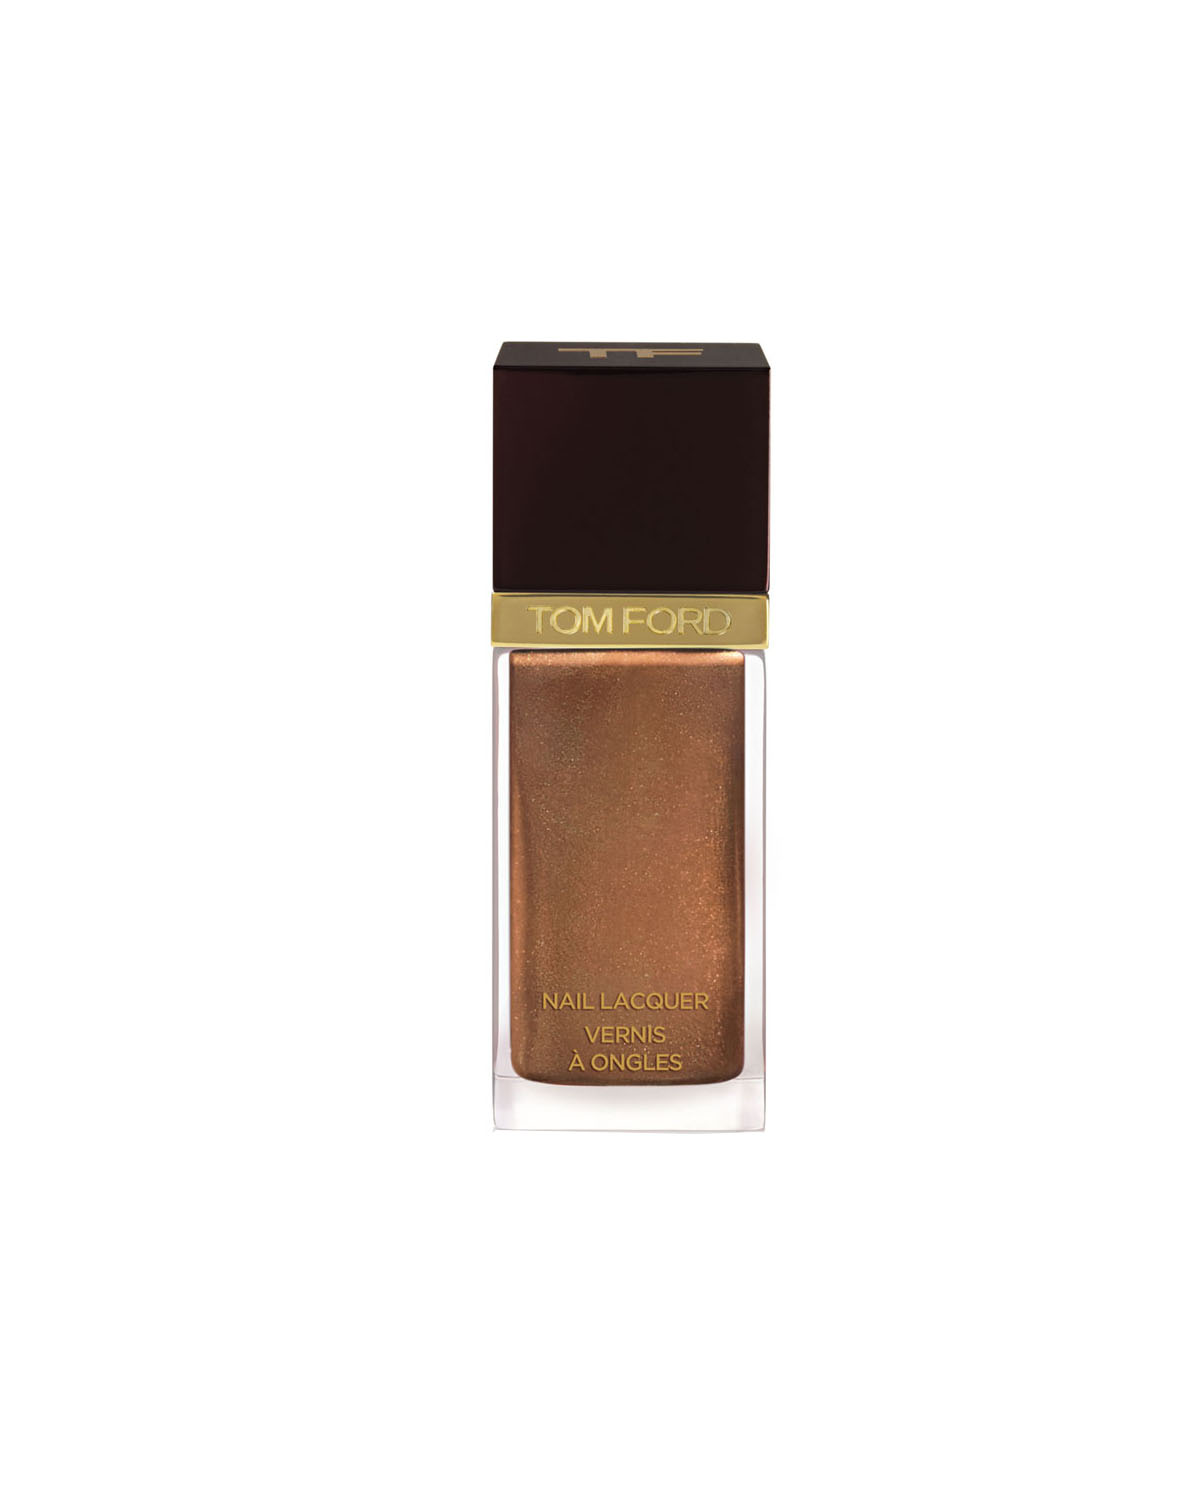 Tom Ford Nail Lacquer 0.41oz/12ml New In Box   eBay